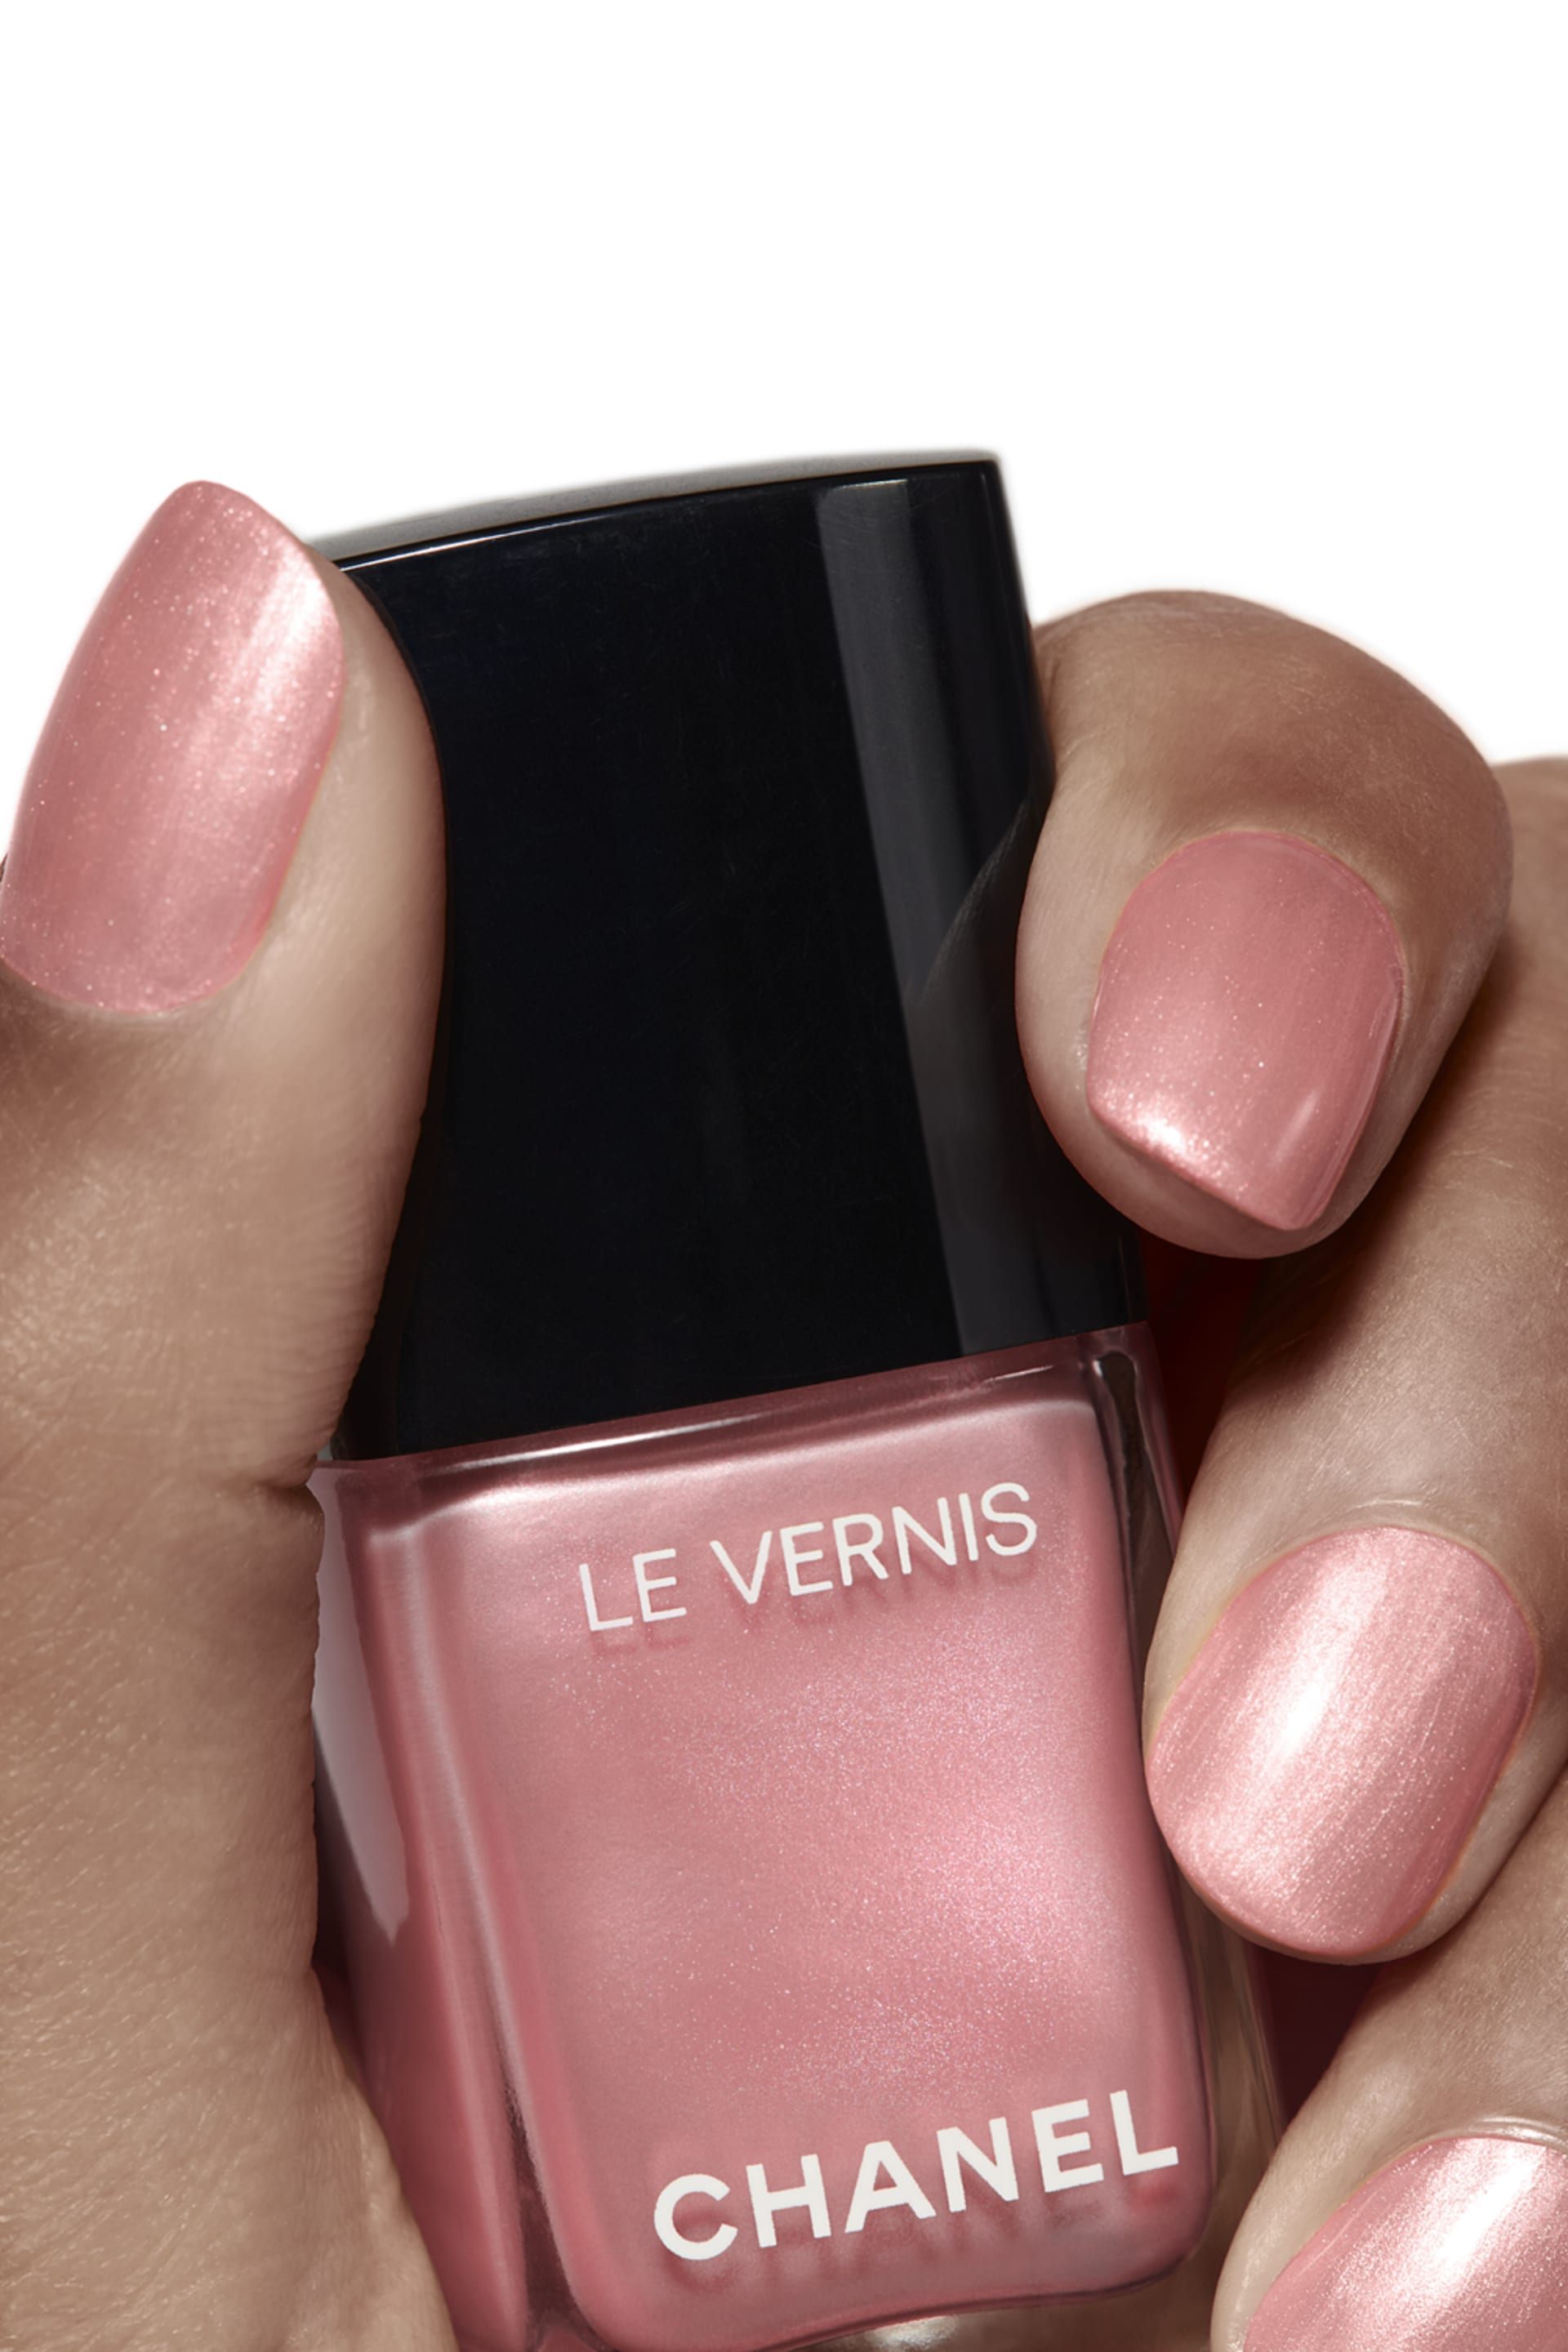 Application makeup visual 1 - LE VERNIS 741 - FLEUR DE PÊCHER